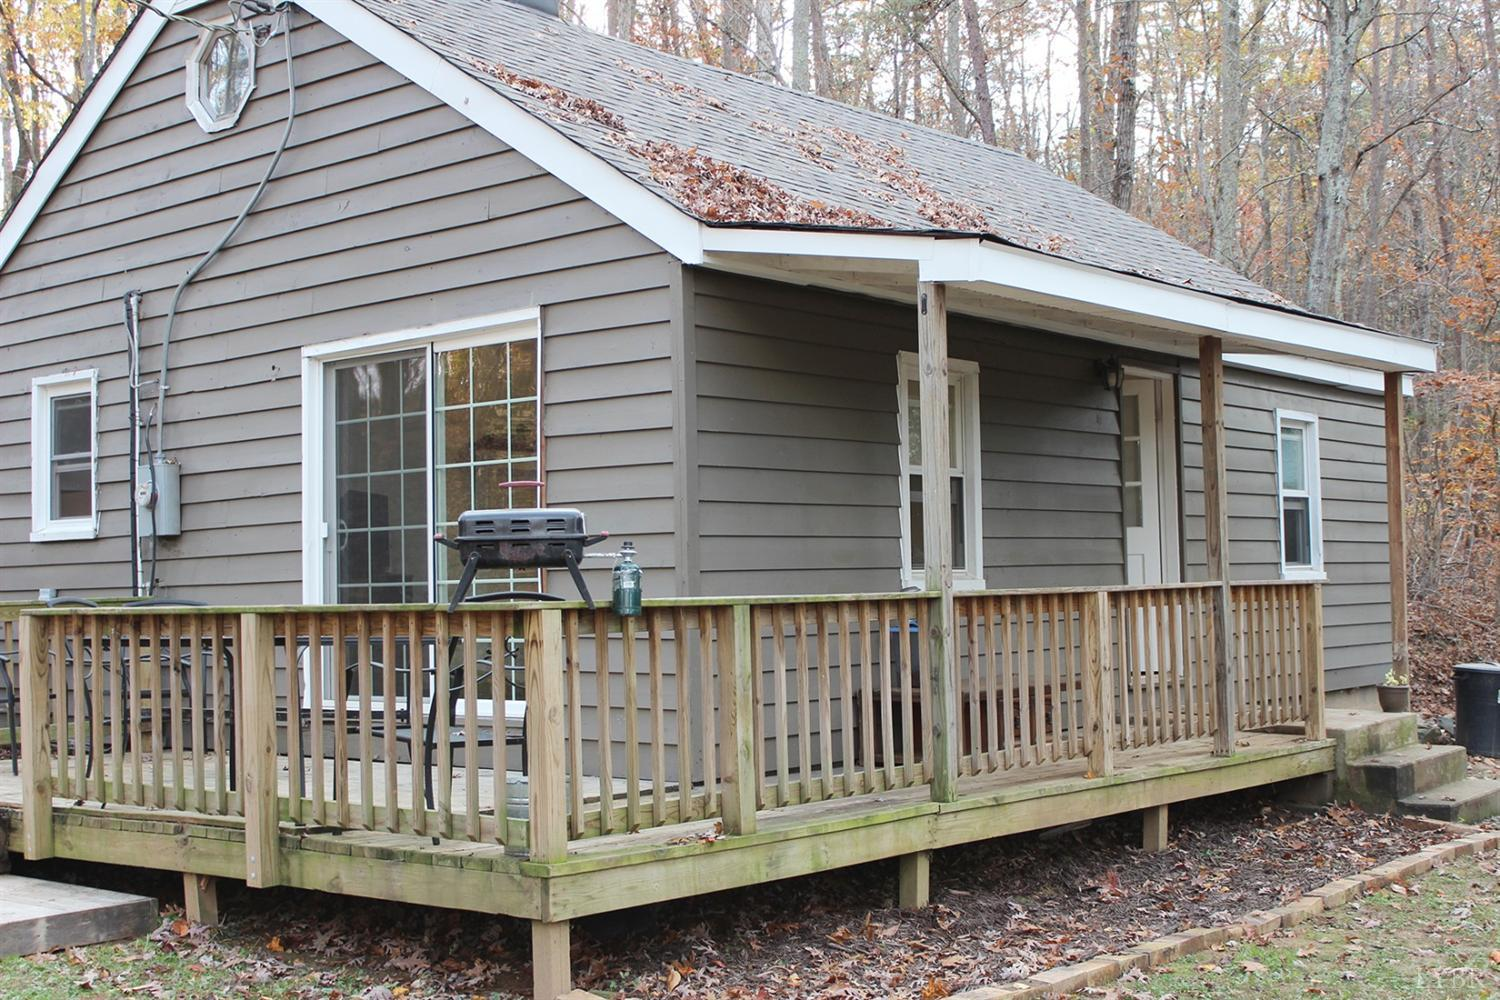 Image of Residential for Sale near Altavista, Virginia, in Campbell county: 3.35 acres